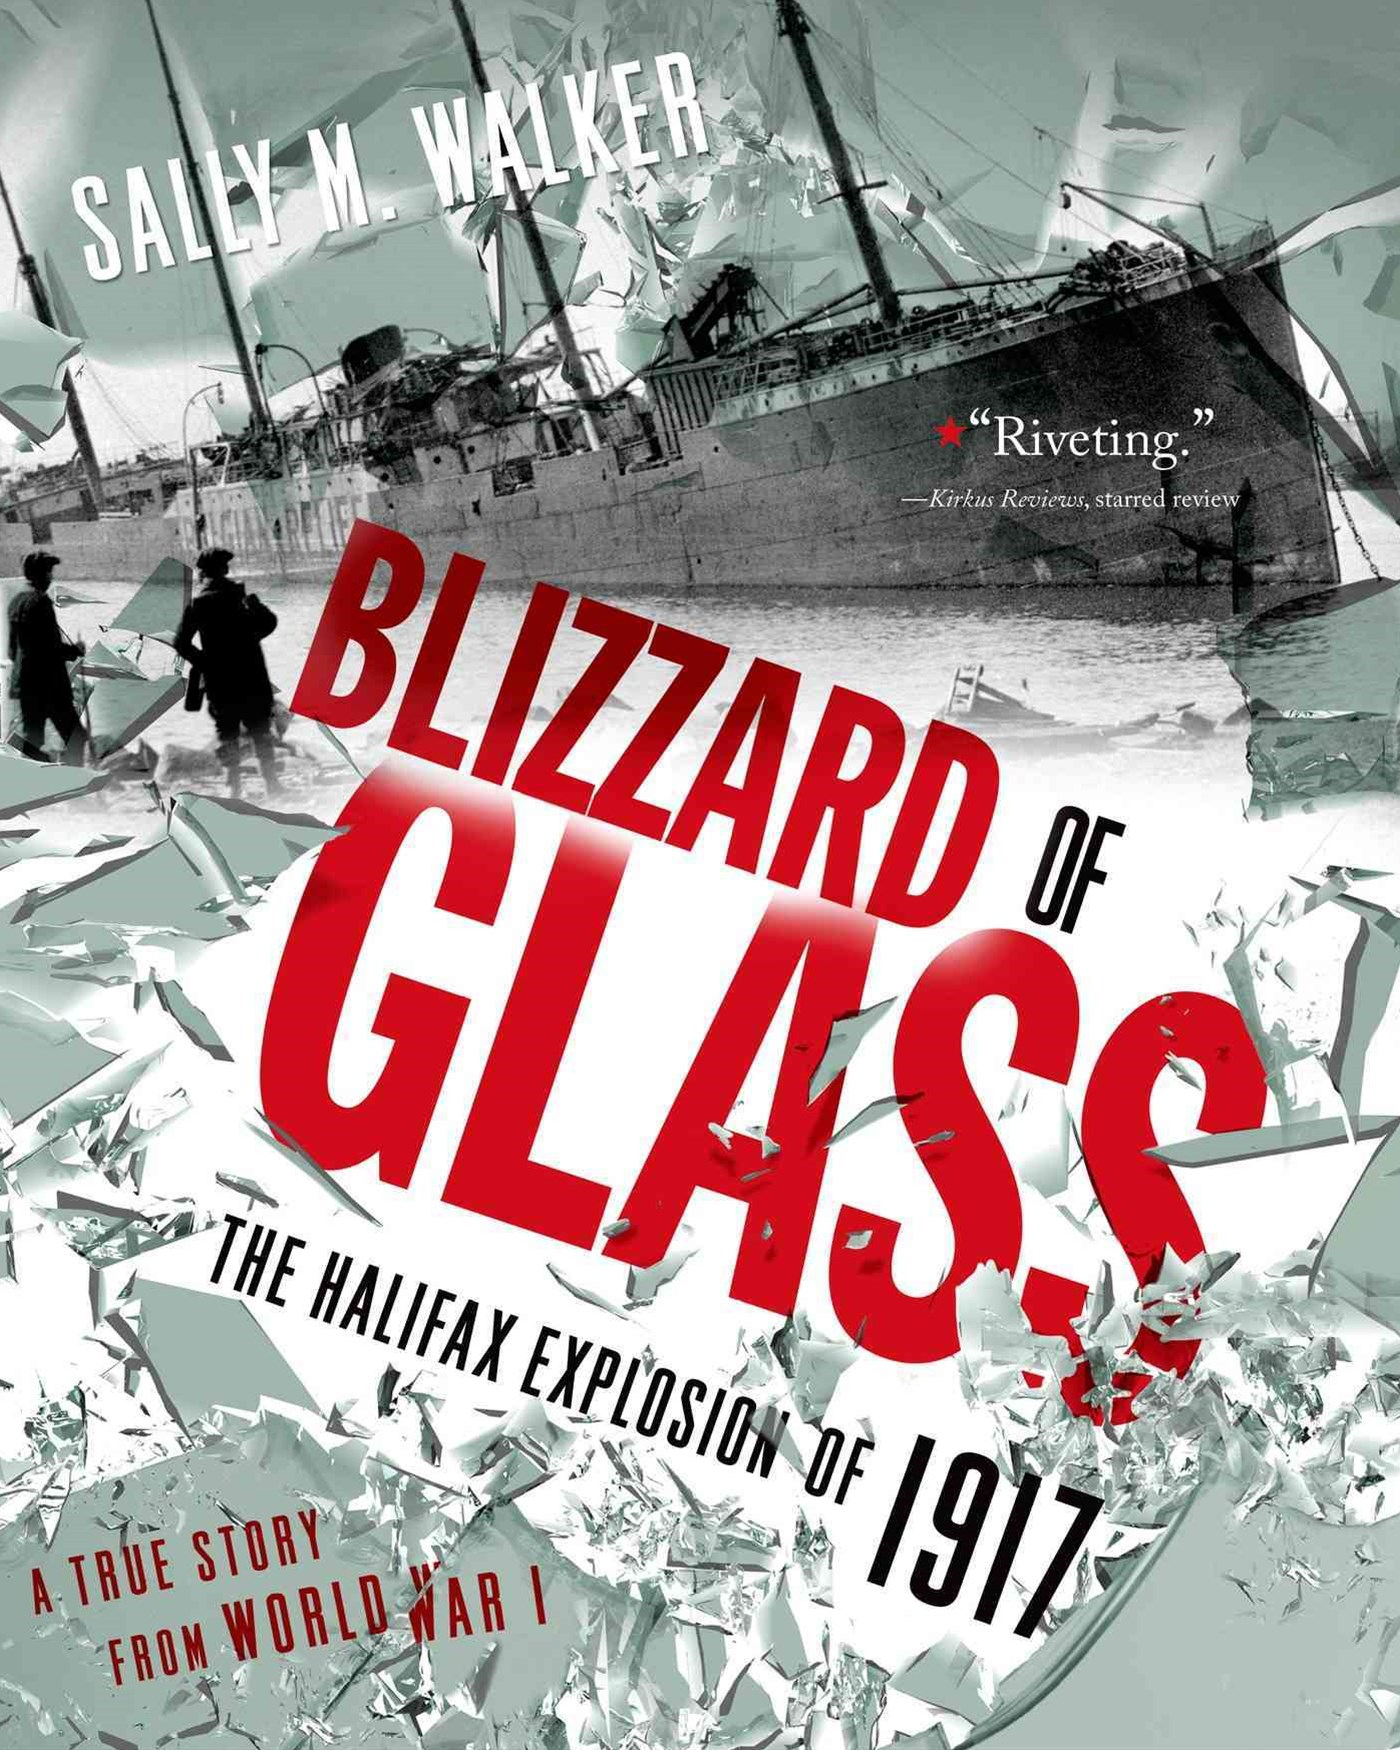 Blizzard of Glass